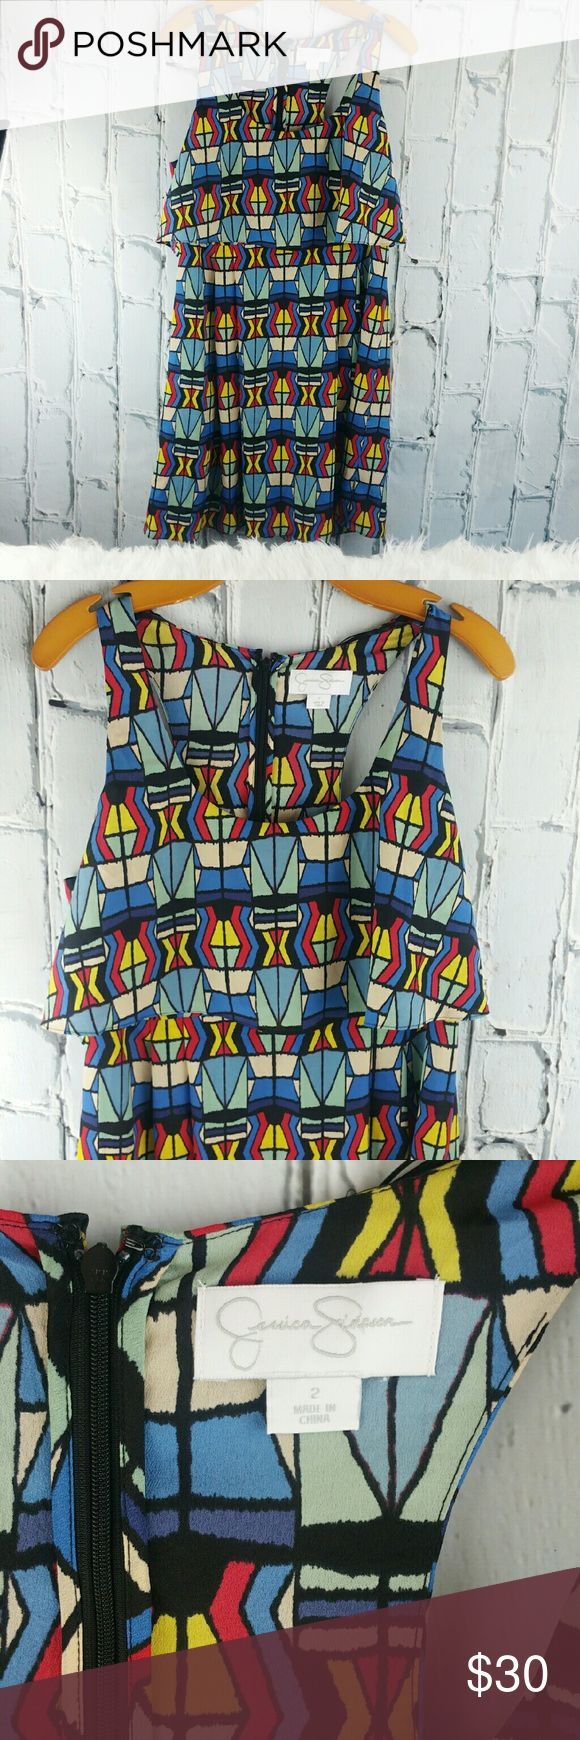 """SALE Jessica Simpson Multi Color Summer Dress Amazing Jessica Simpson Multi Color Summer Dress 37"""" from top of shoulder to bottom 20"""" from armpit to armpit Jessica Simpson Dresses"""